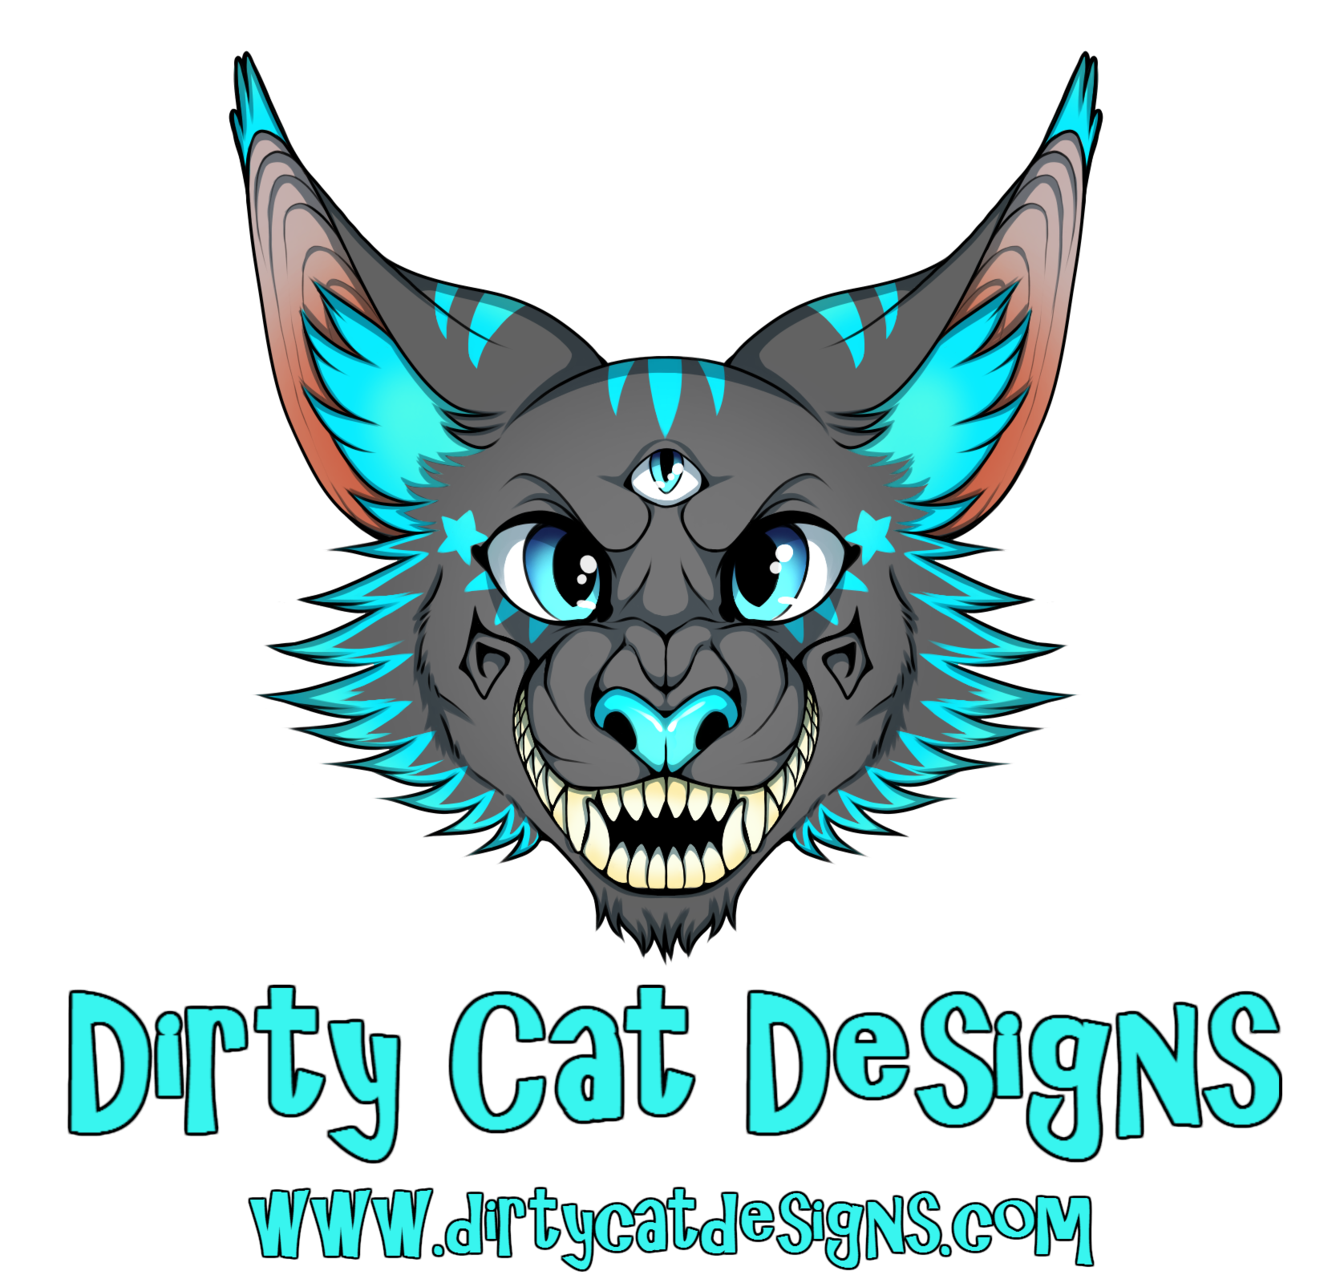 Dirty clipground designs . Domestic cat clipart